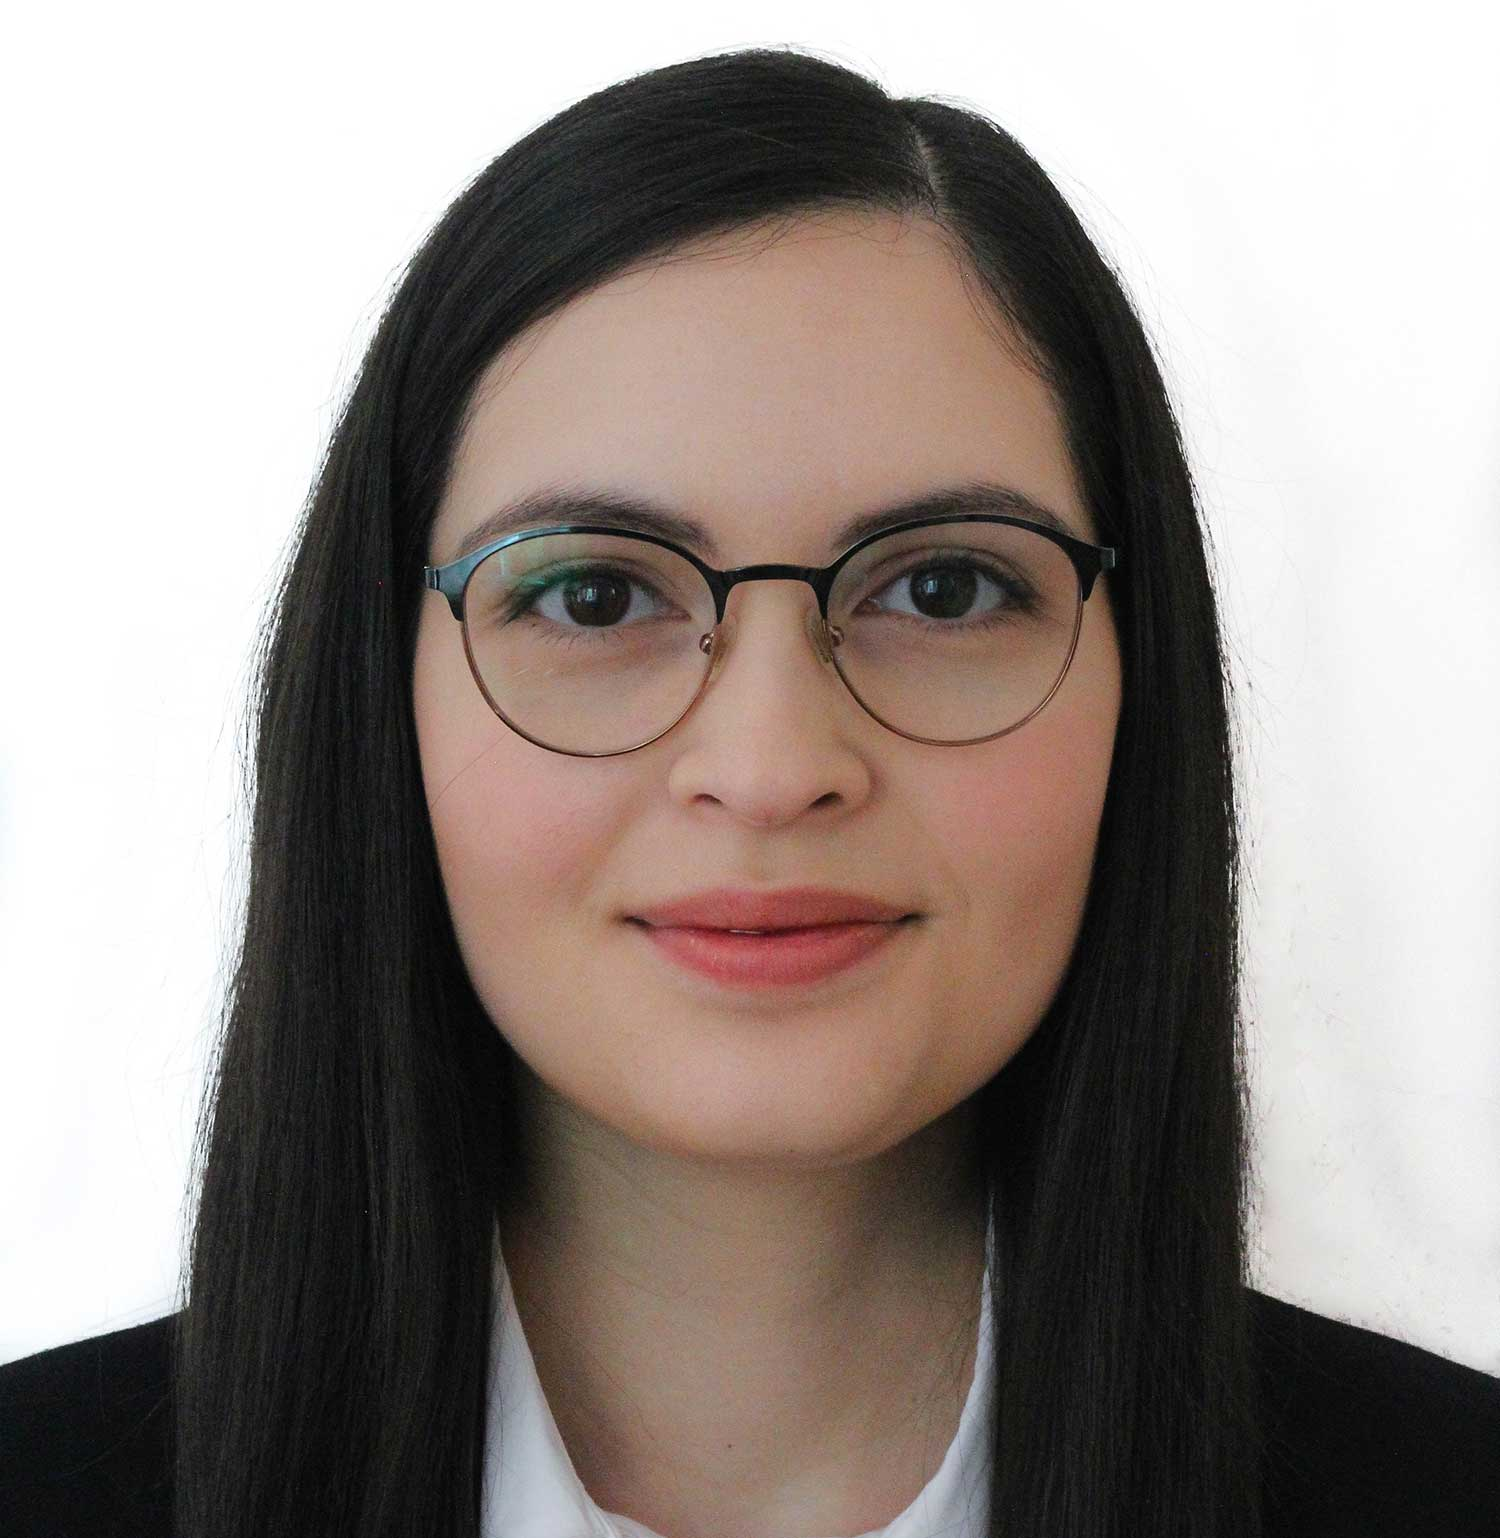 portrait of woman with straight long black hair and glasses